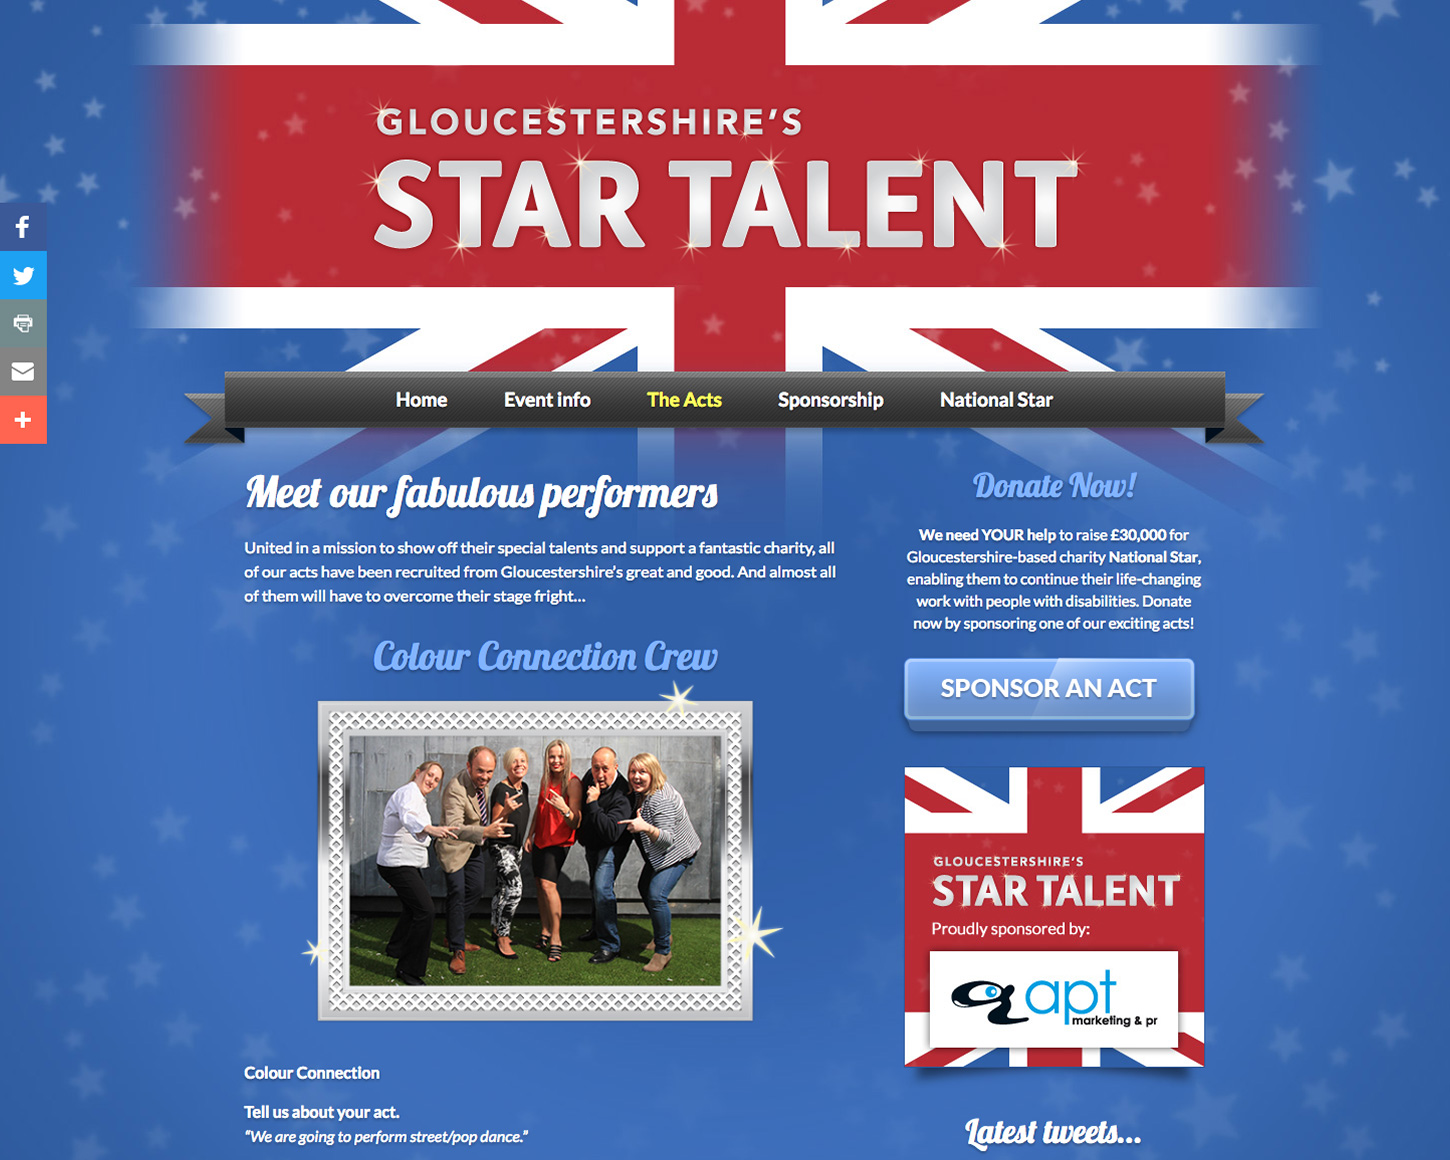 Gloucestershire's Star Talent website